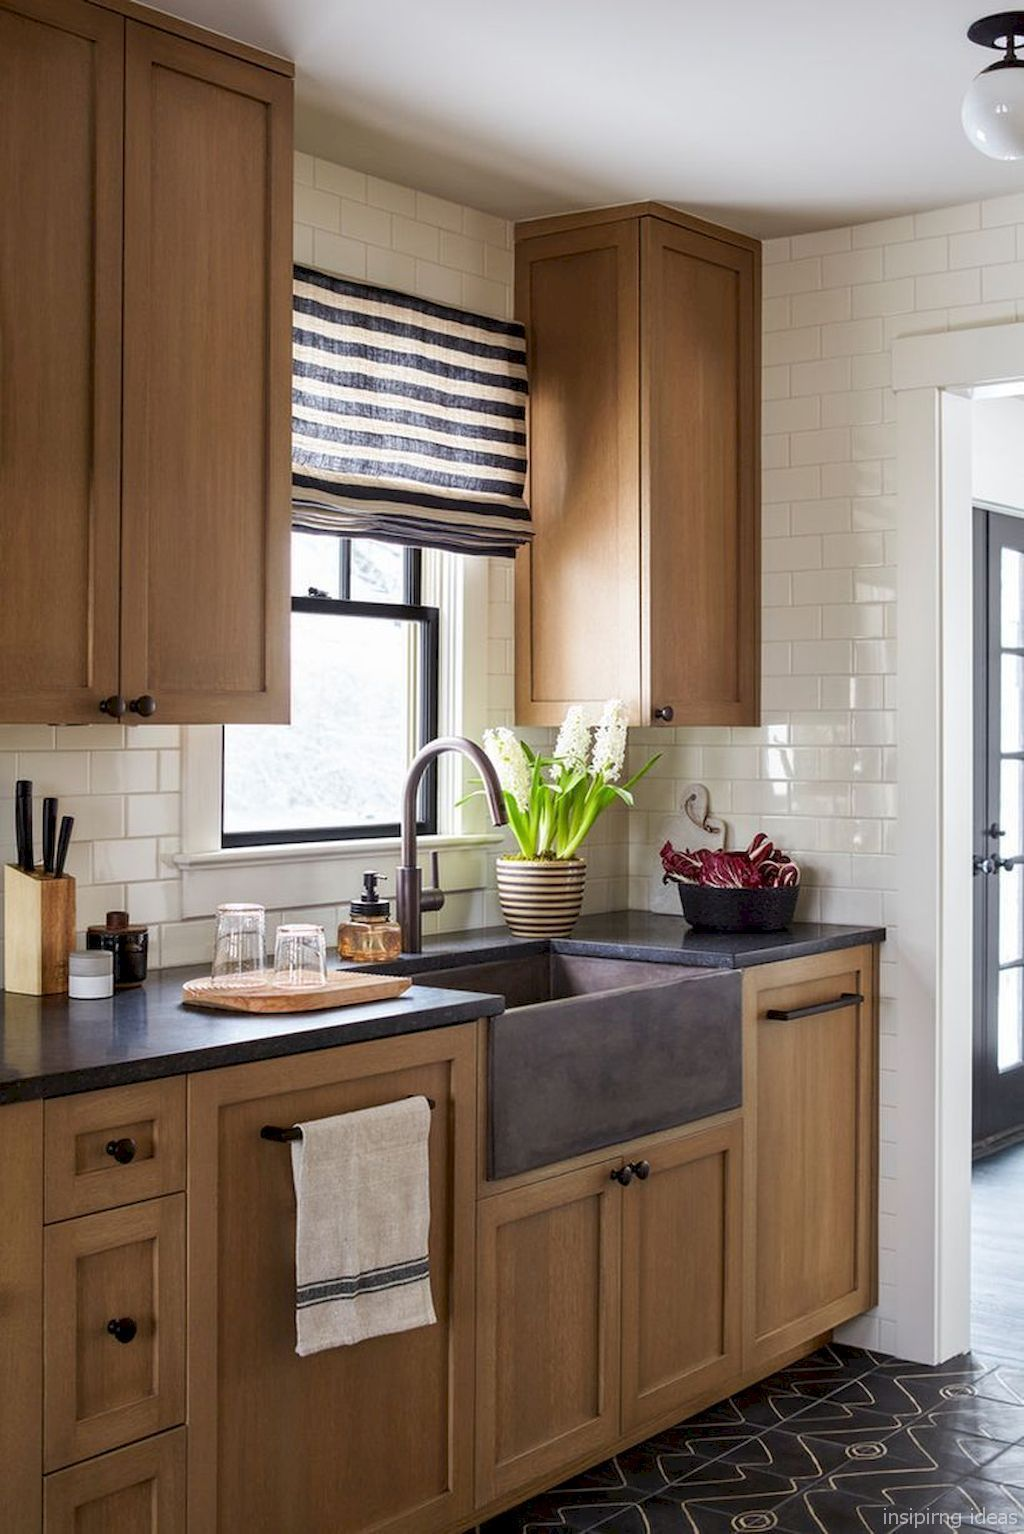 70 Incredible Farmhouse Kitchen Cabinets Design Ideas Farmhouse Style Kitchen Cabinets Kitchen Cabinet Styles Kitchen Cabinet Design